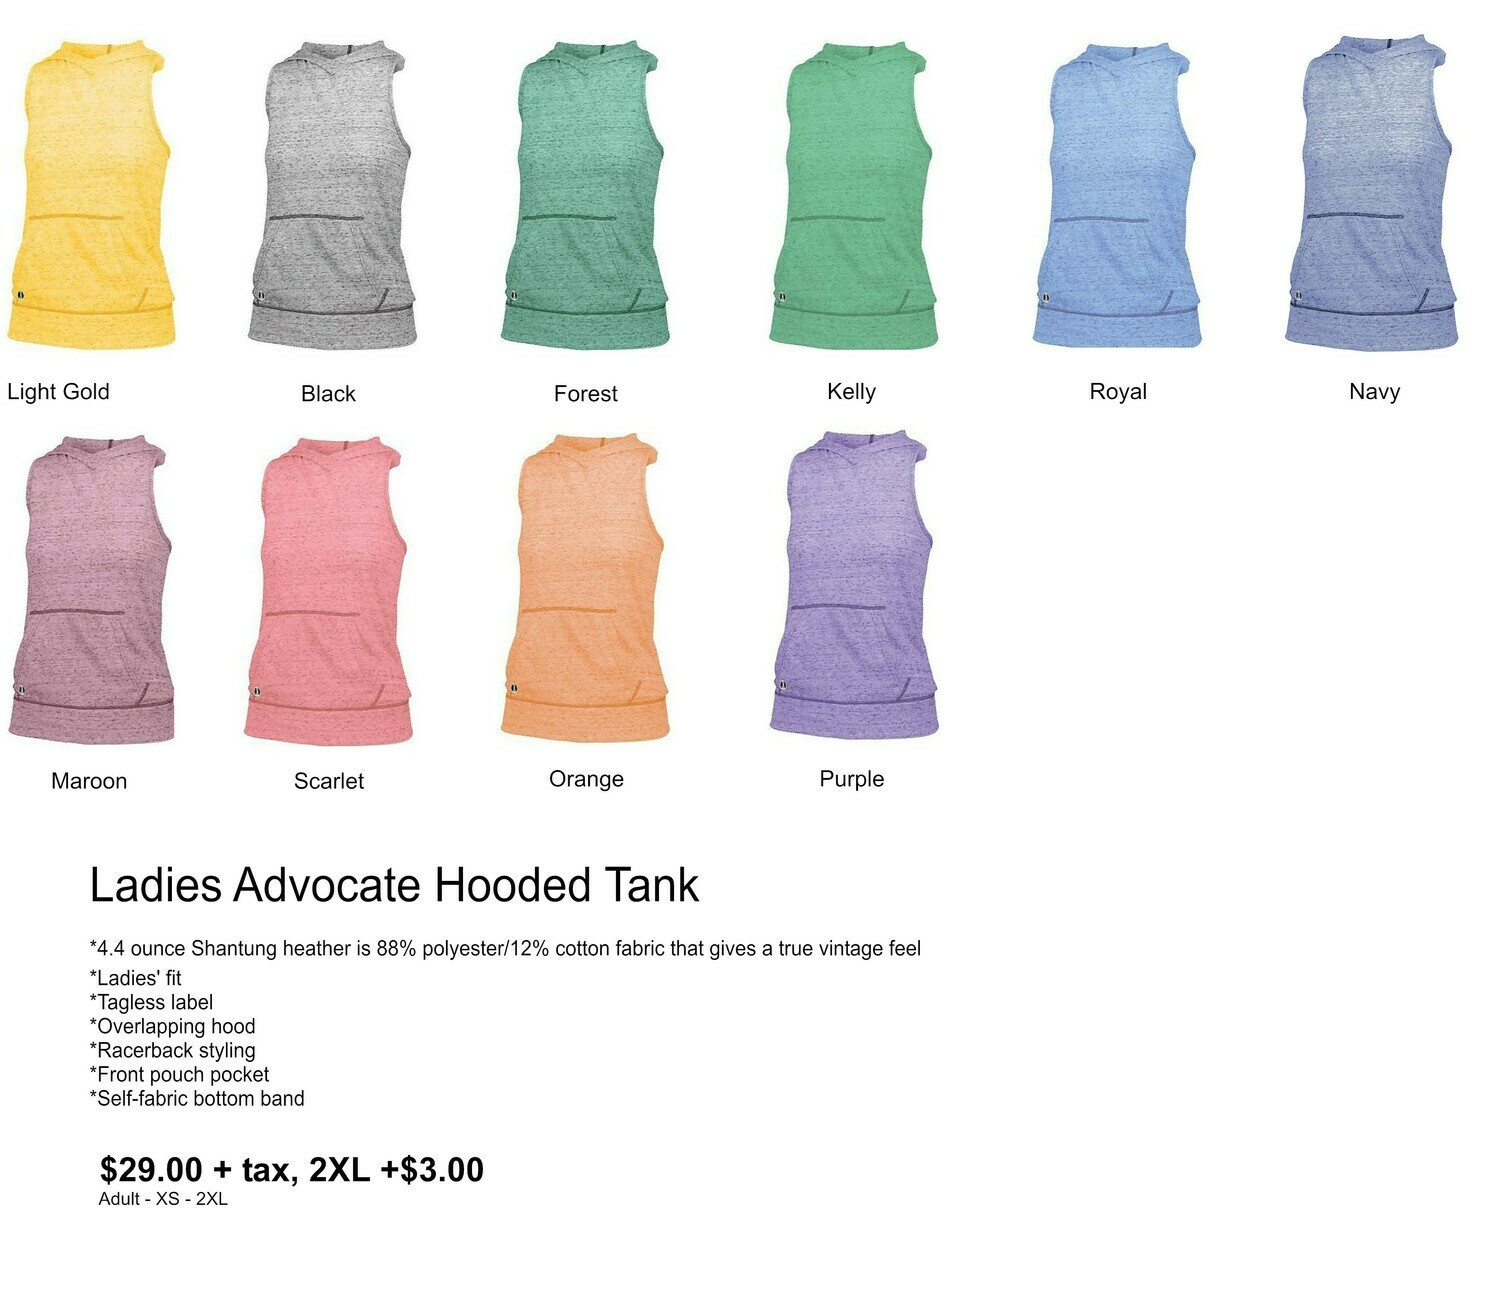 Ladies Advocate Hooded Tank